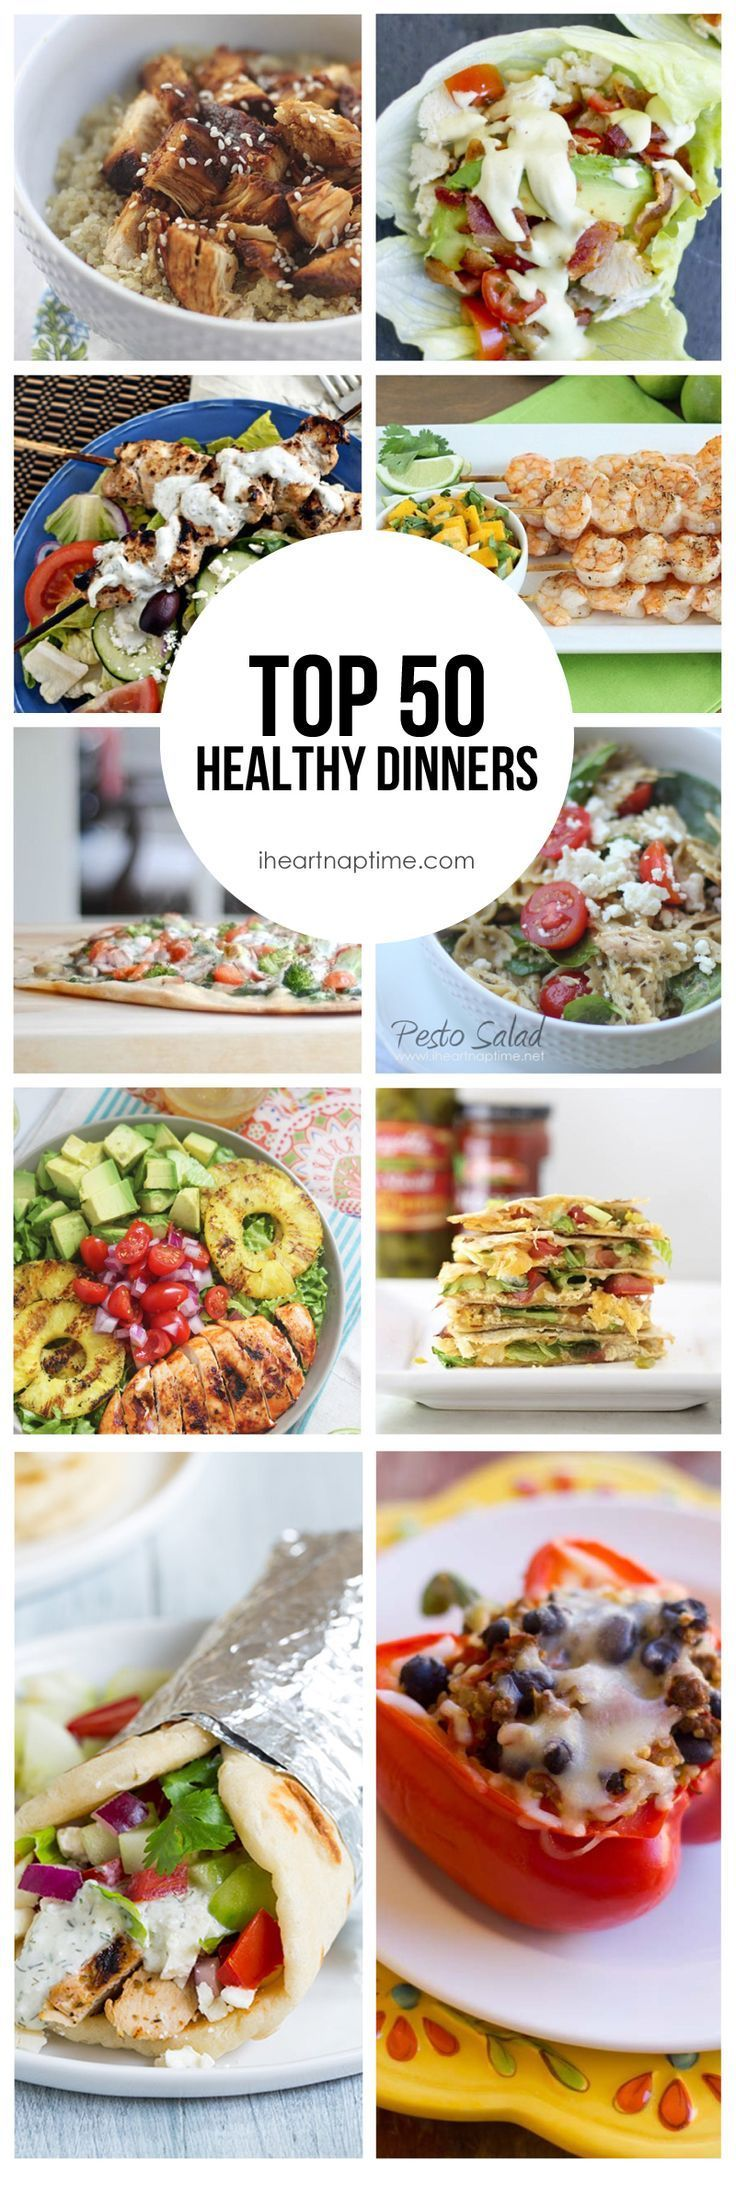 Top 50 Healthy Dinners  so many delicious recipes to try  Great healthy meal ideas